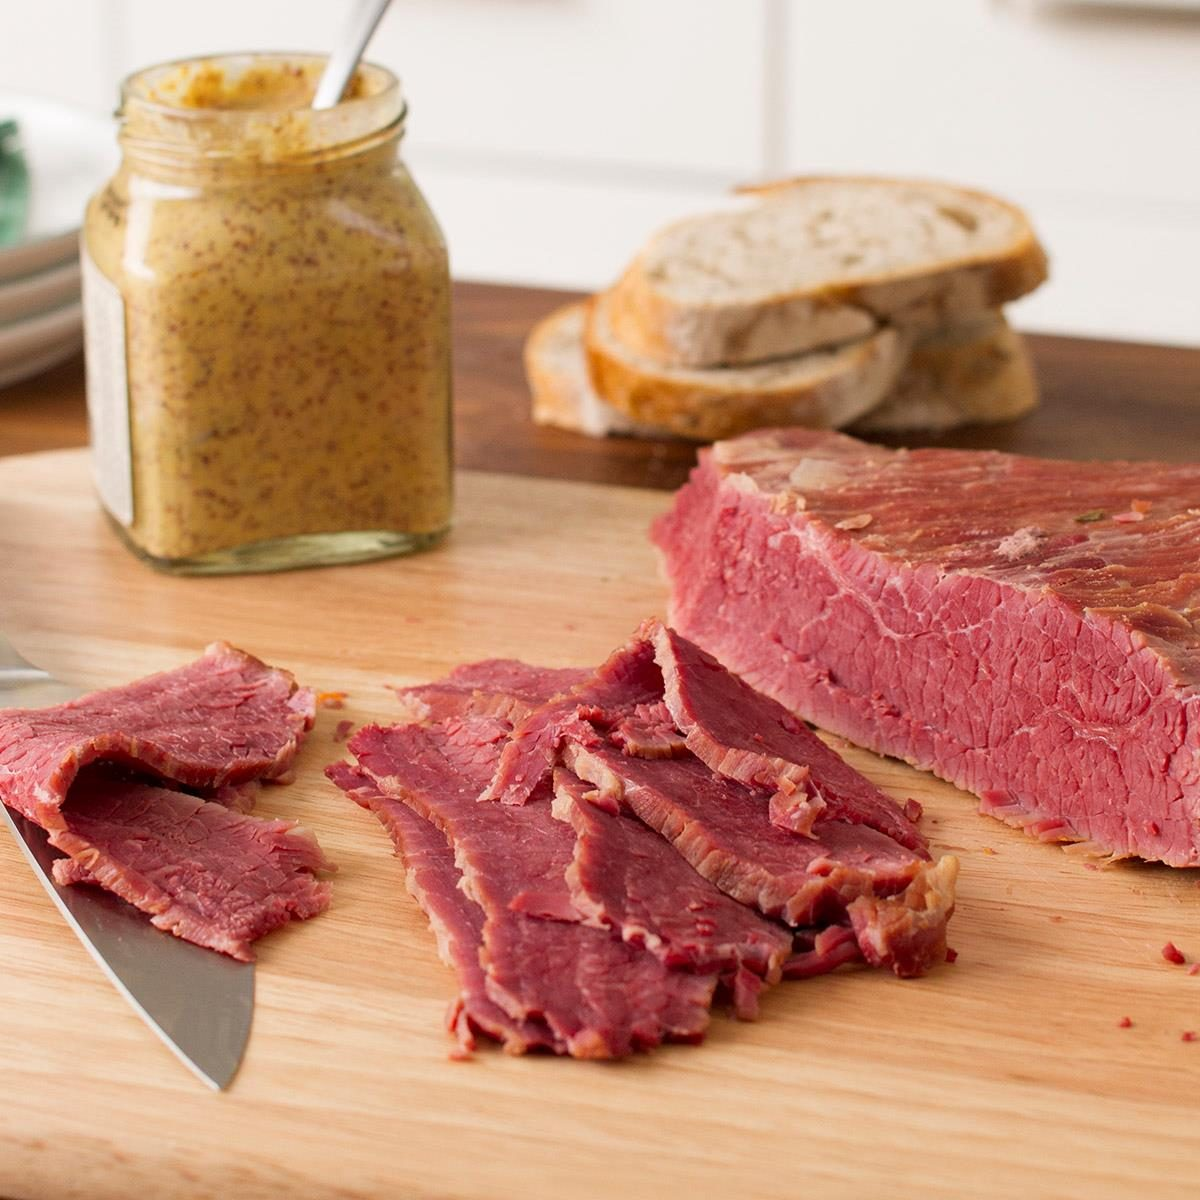 A piece of sliced corned beef brisket on a cutting board. With a jar of mustard and rye bread in the background.